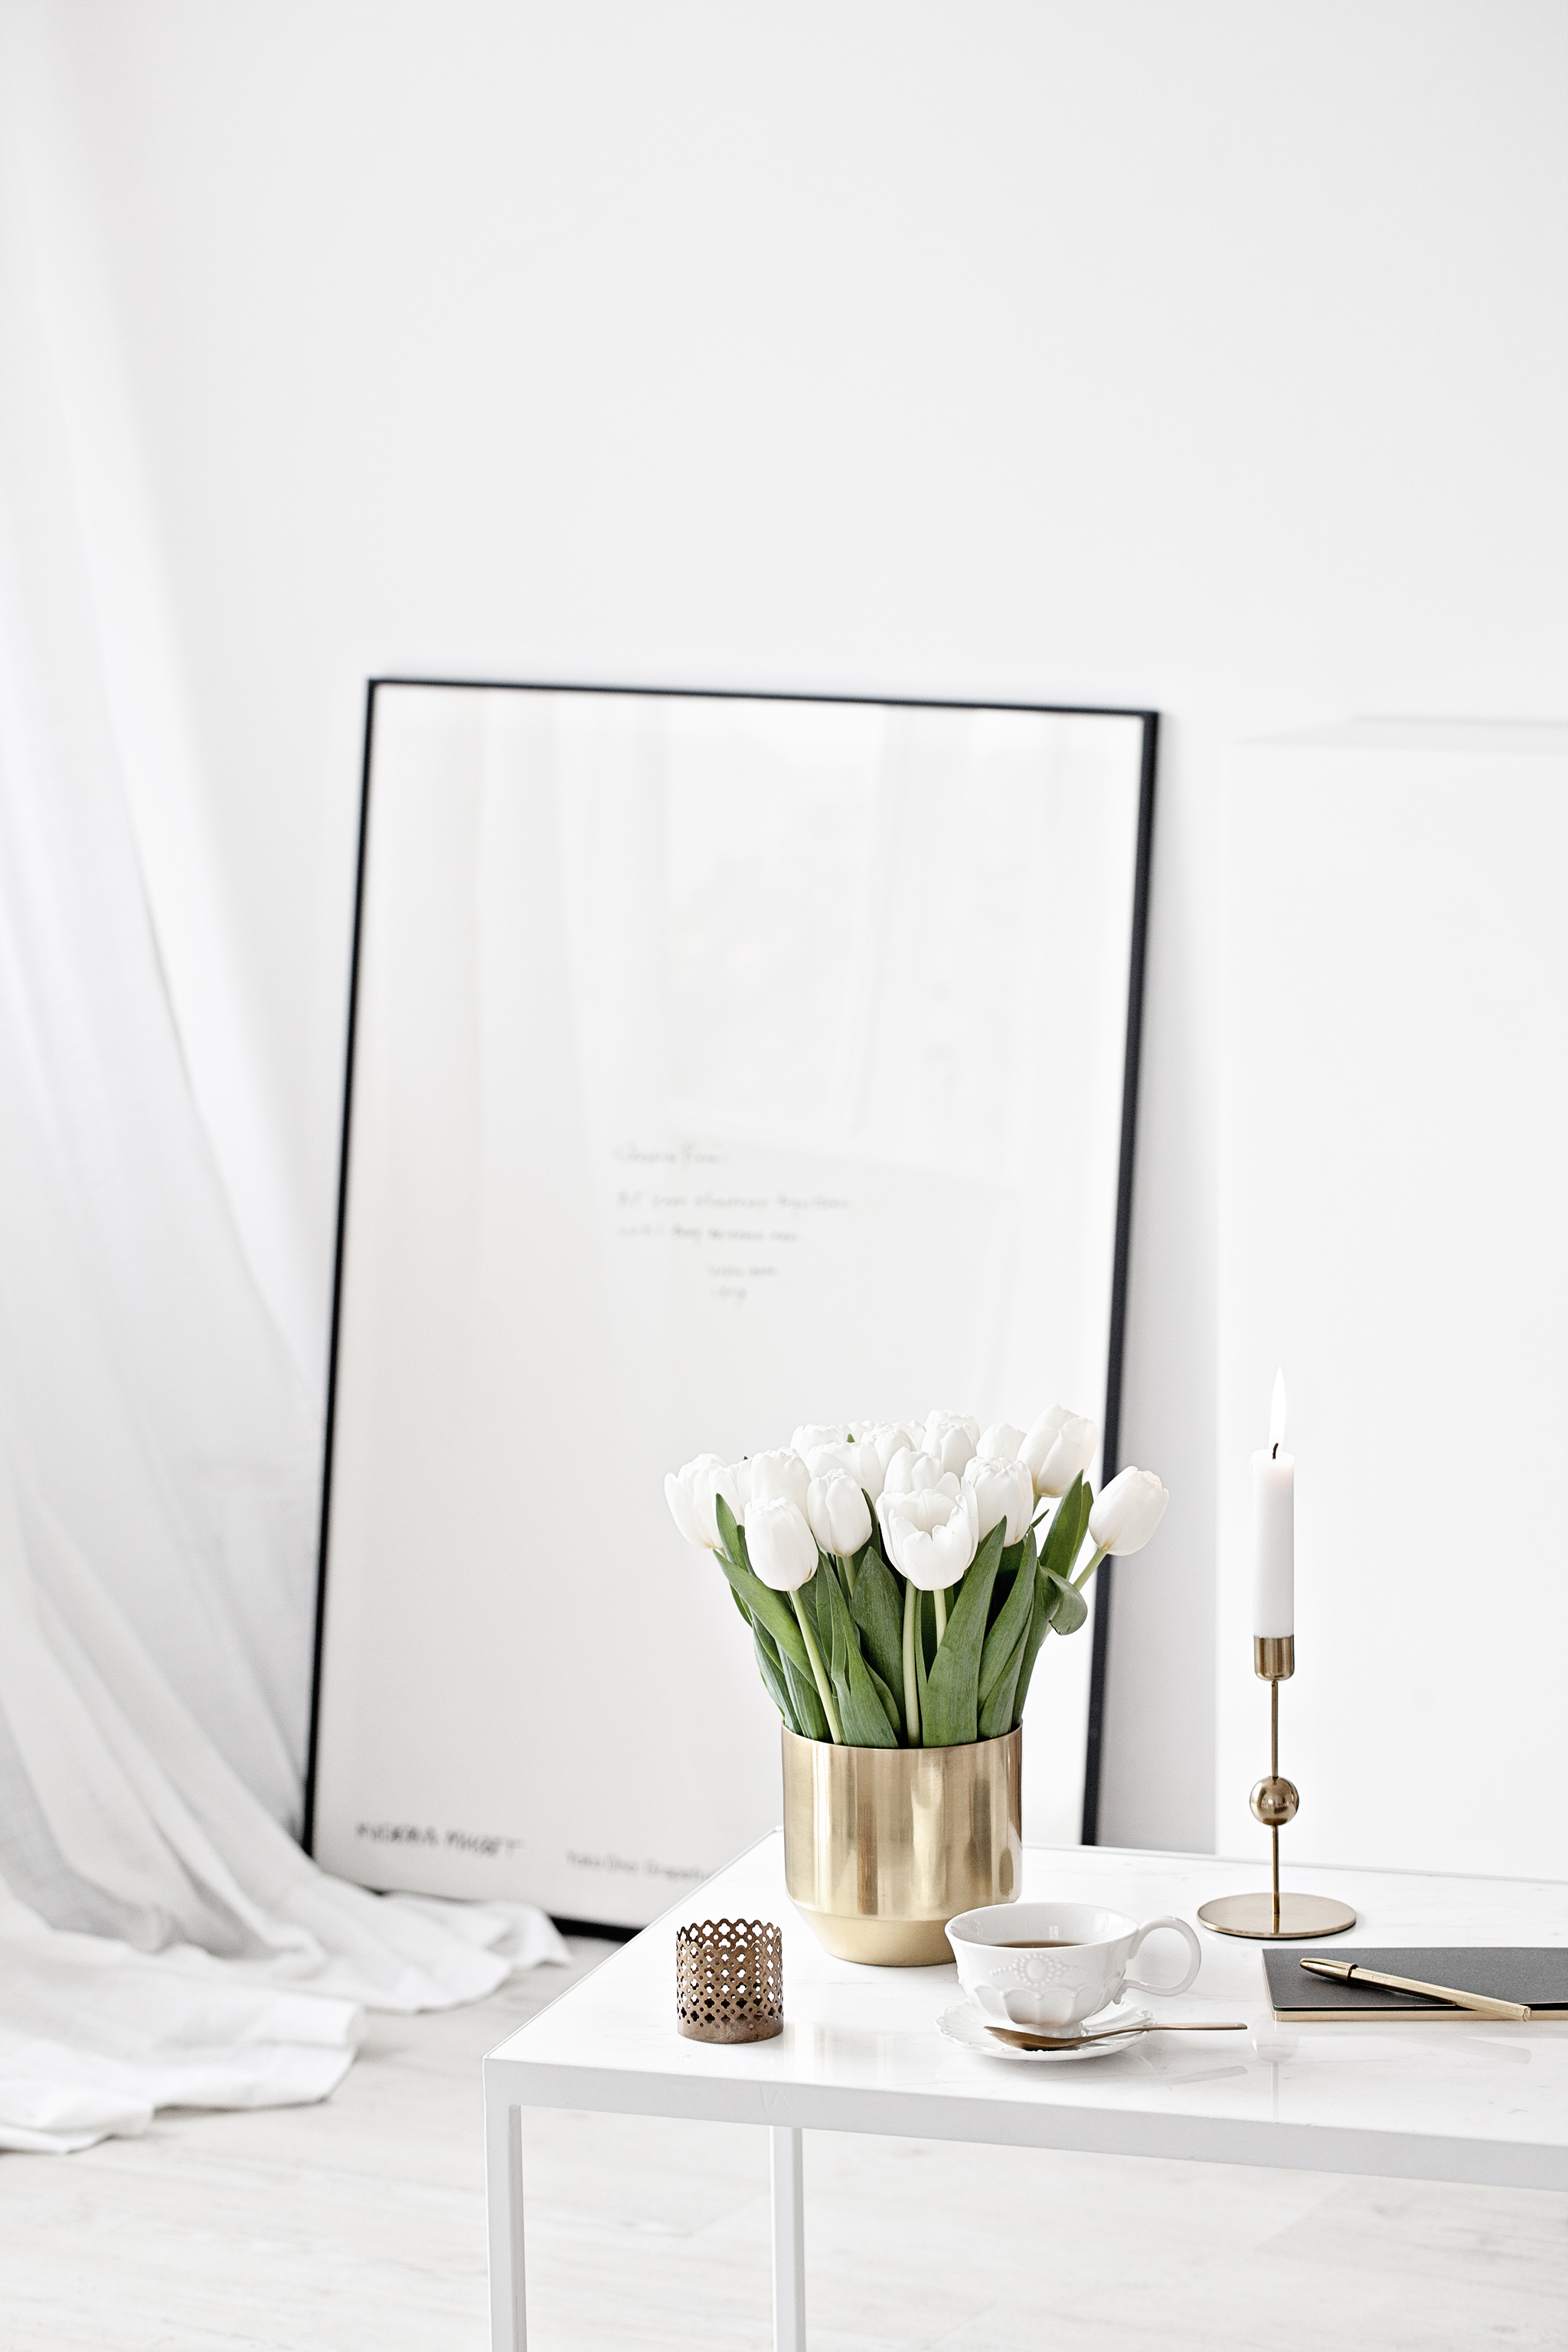 Gold & Brass Vase, Candle Holders from H&M | Gold Note Pad & Gold Pen from Hay Design | White Tulips | Yoko Ono Poster Print | White Marble Table from Serax Belgium